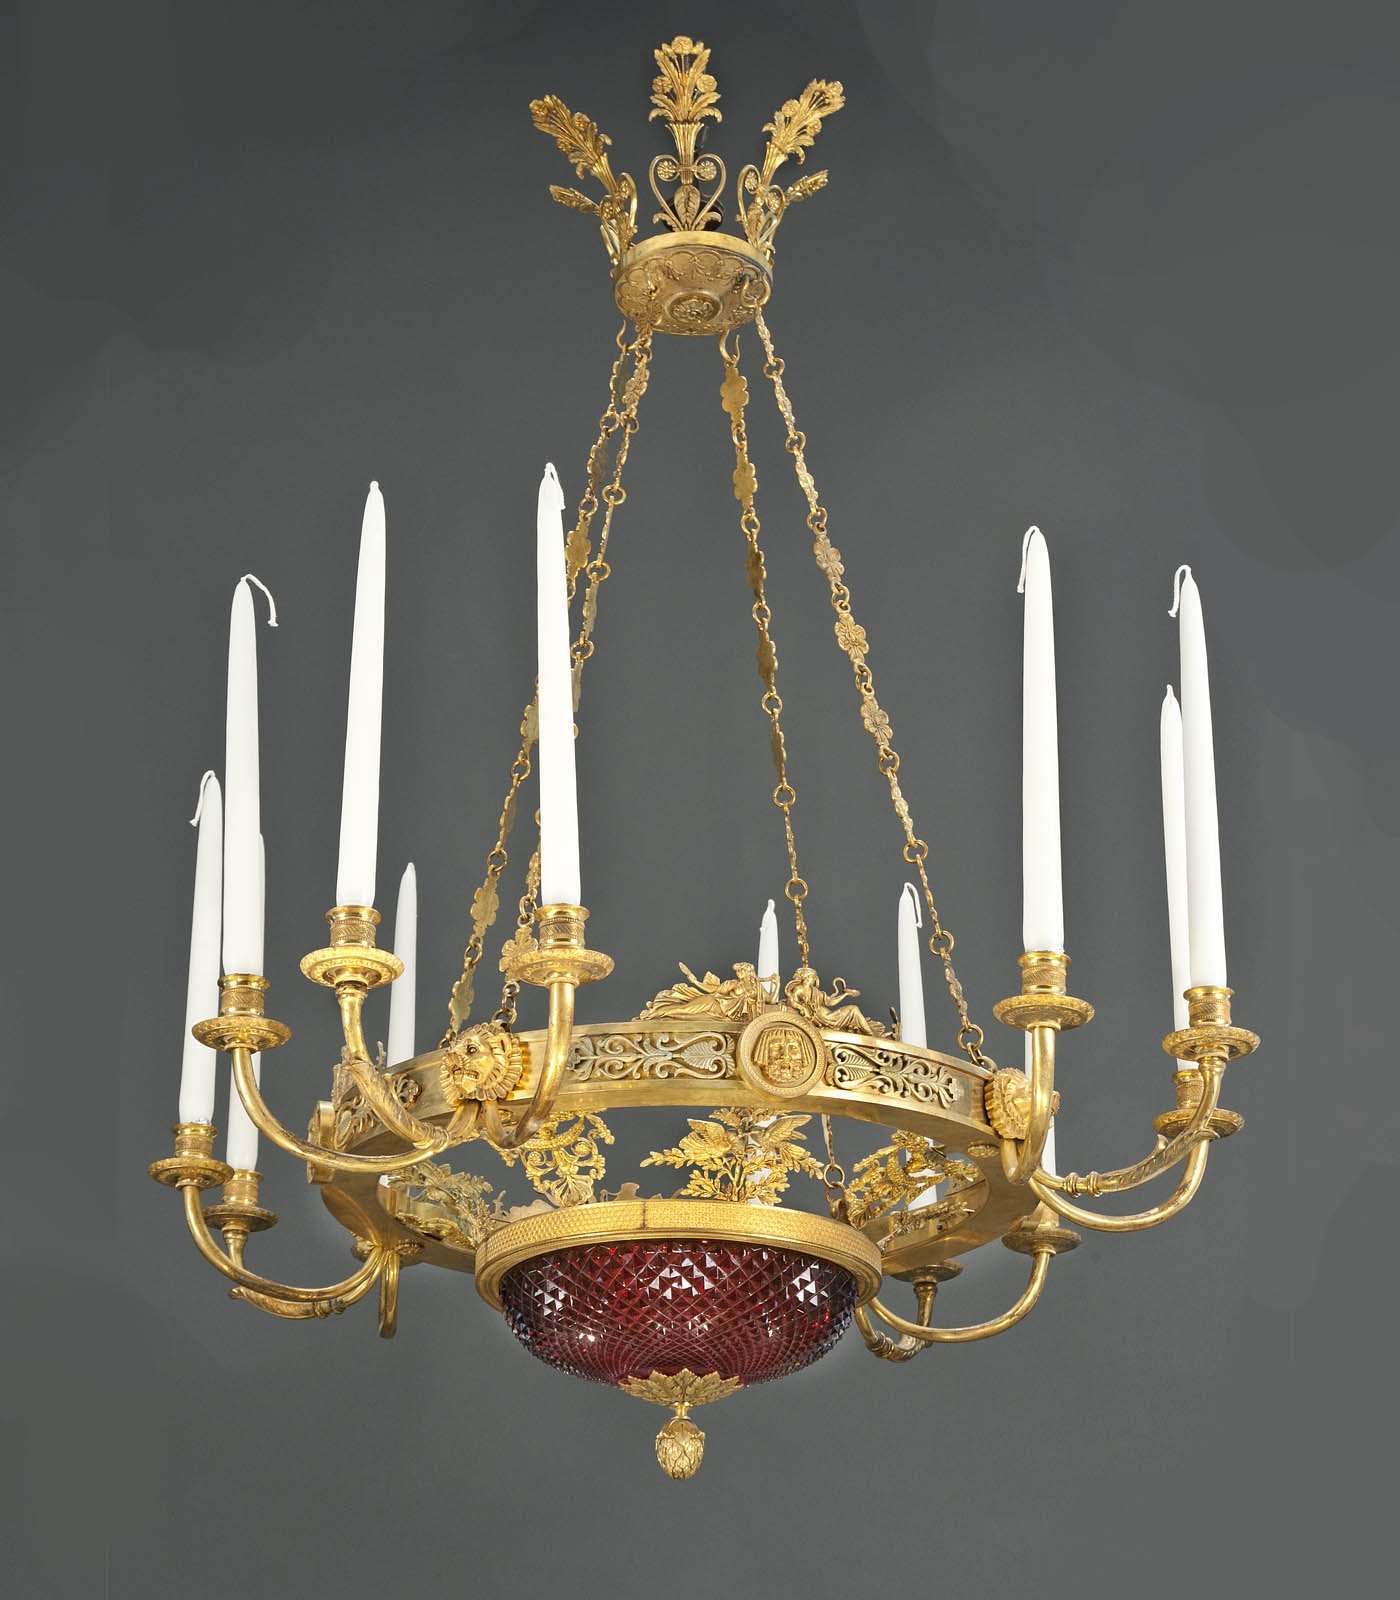 A Matched Pair Of Important And Rare Russian Empire Chandeliers Throughout Turquoise Empire Chandeliers (Image 5 of 25)